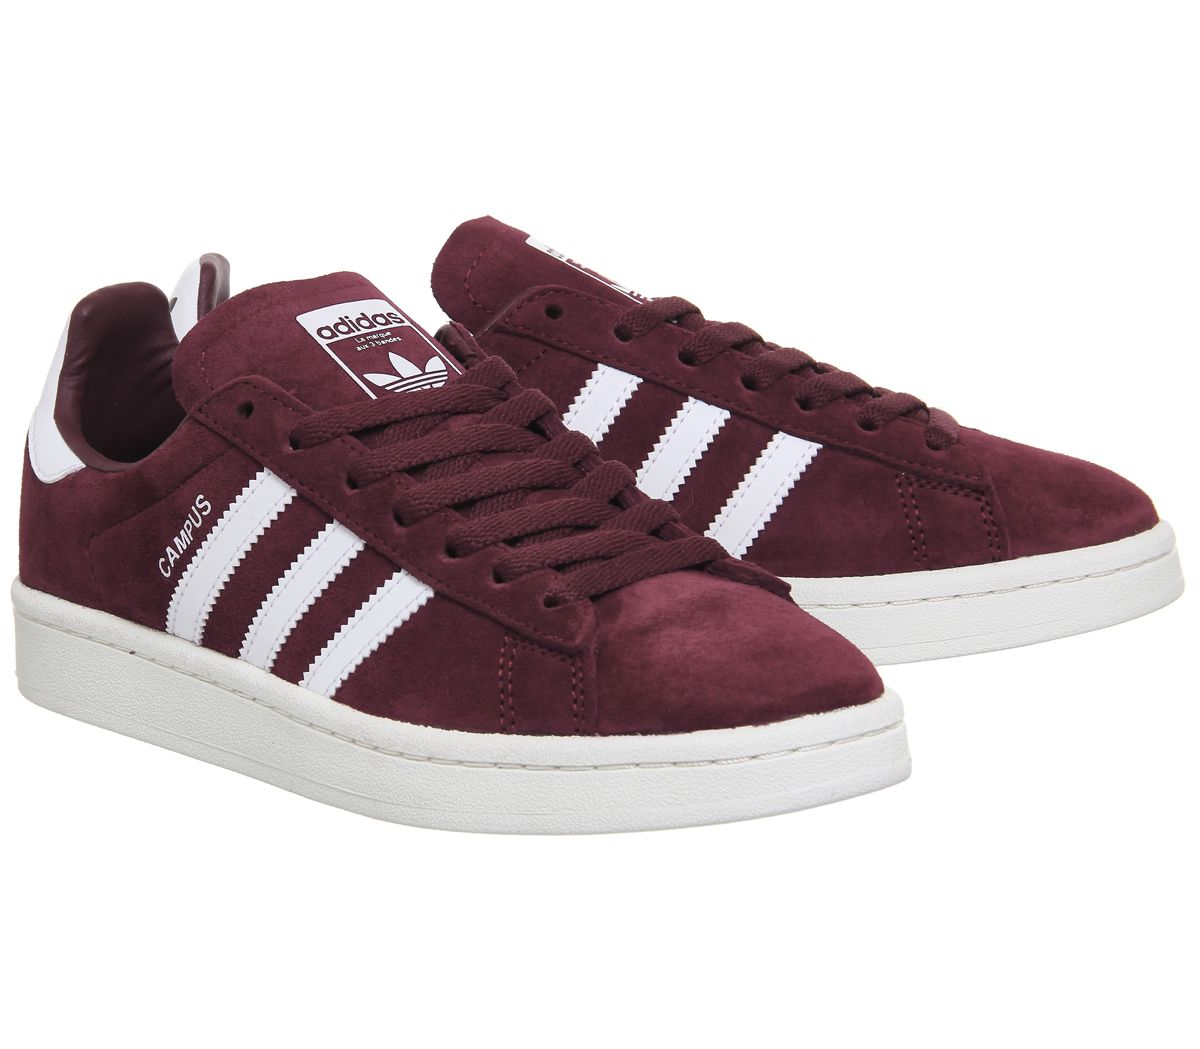 082370db565 Sentinel Adidas Campus Trainers Ash Pearl Trainers Shoes